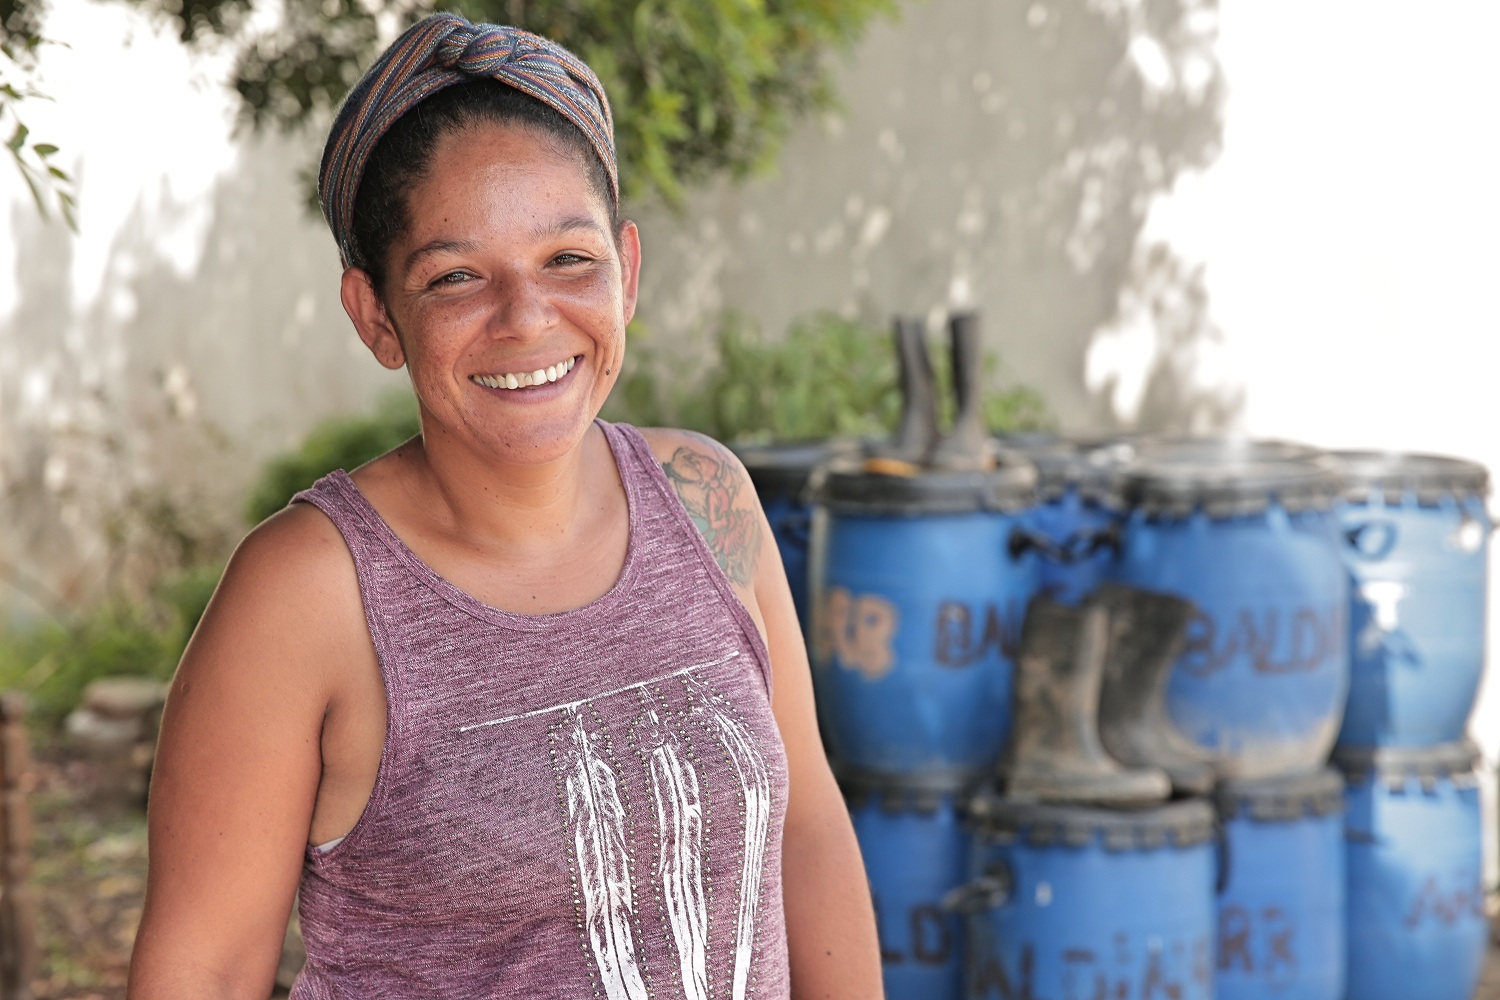 A light-skinned black woman with her hair is tied in a scarf. She is wearing a lavender tank top and smiling at the camera. In the background is a pile of blue buckets, out of focus. The sun is shining and trees cast shadows on a white wall behind the buckets.